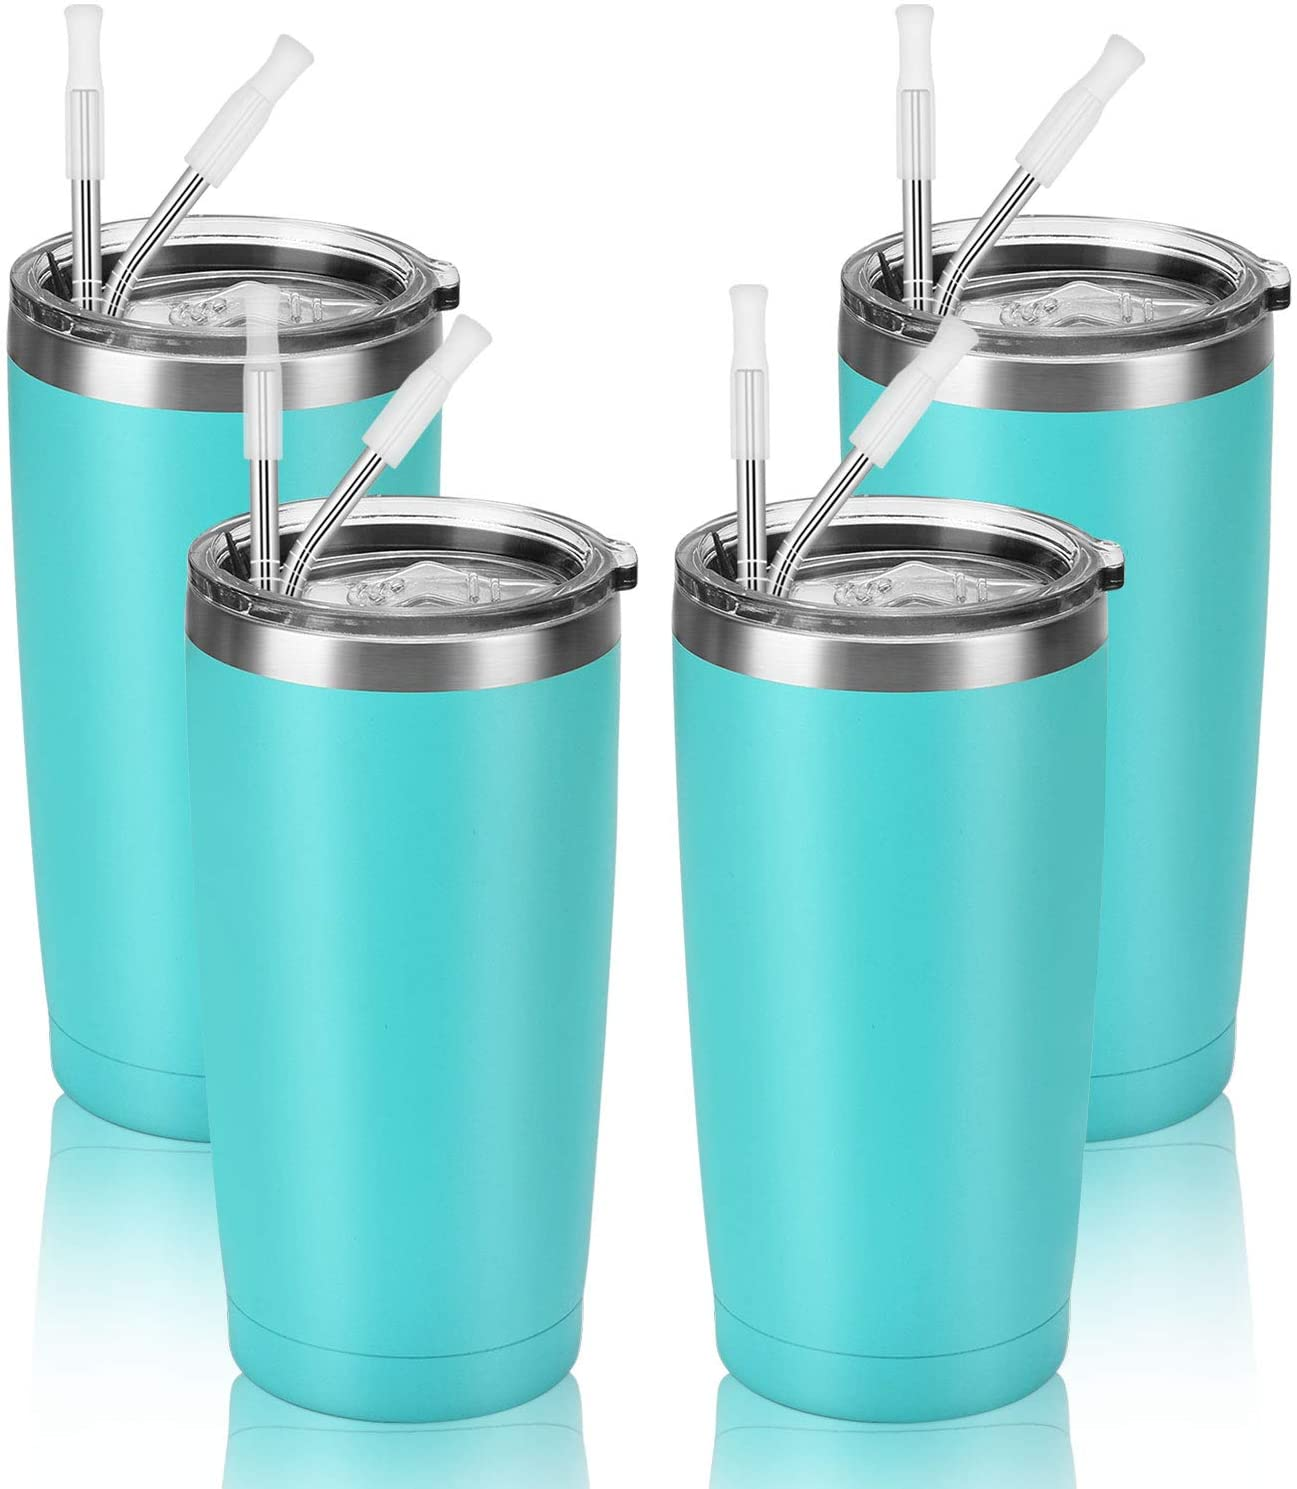 4 Pack Travel Tumblers with 8 Lids, Stainless Steel Double Wall Vacuum Travel Tumbler for Home School Office Camping, Insulated Travel Tumbler Works Good for Ice Drink, Hot Beverage(20 oz, Mint)